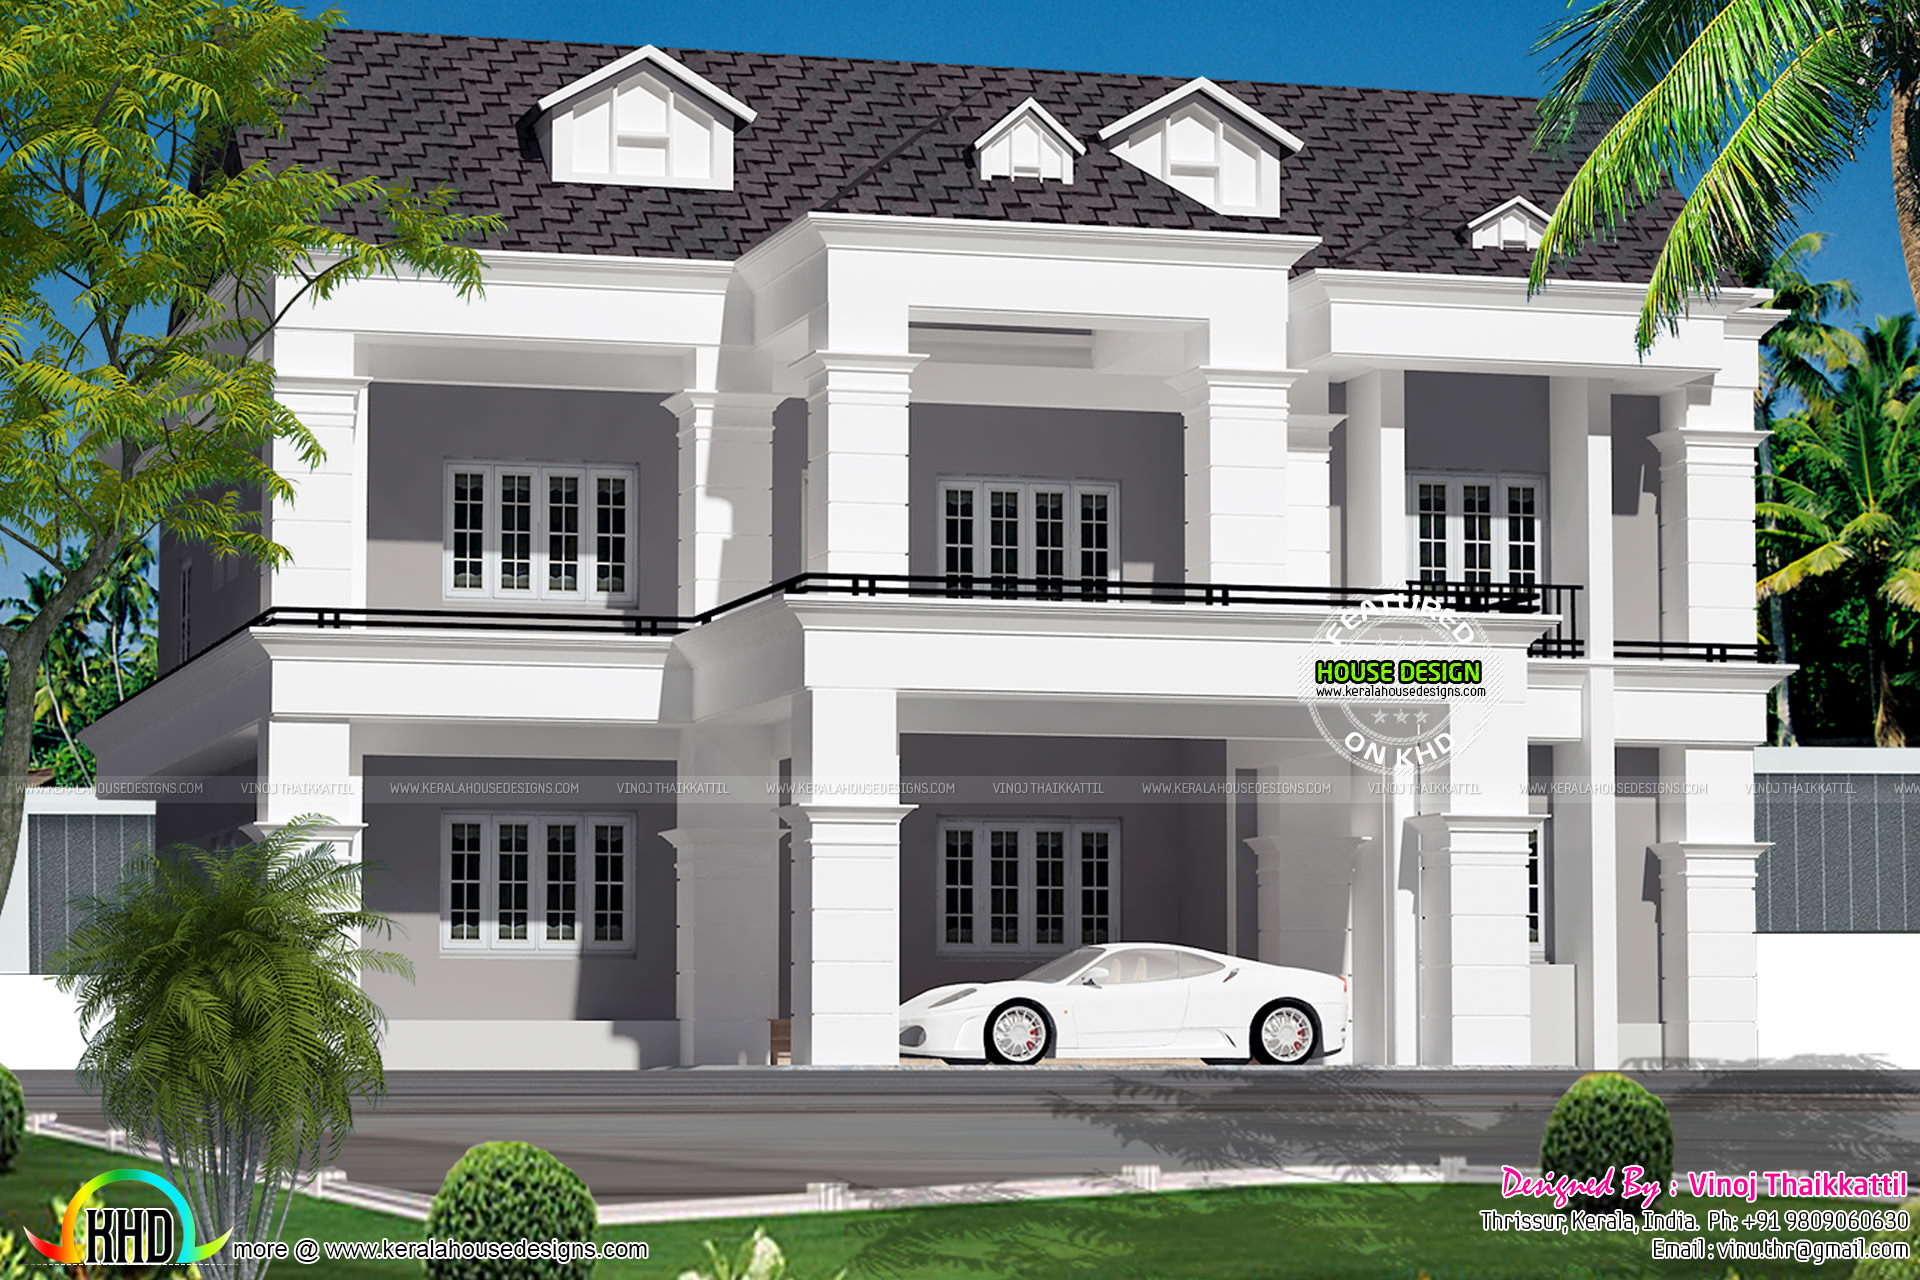 5 bedroom colonial type villa kerala home design and floor plans. Black Bedroom Furniture Sets. Home Design Ideas